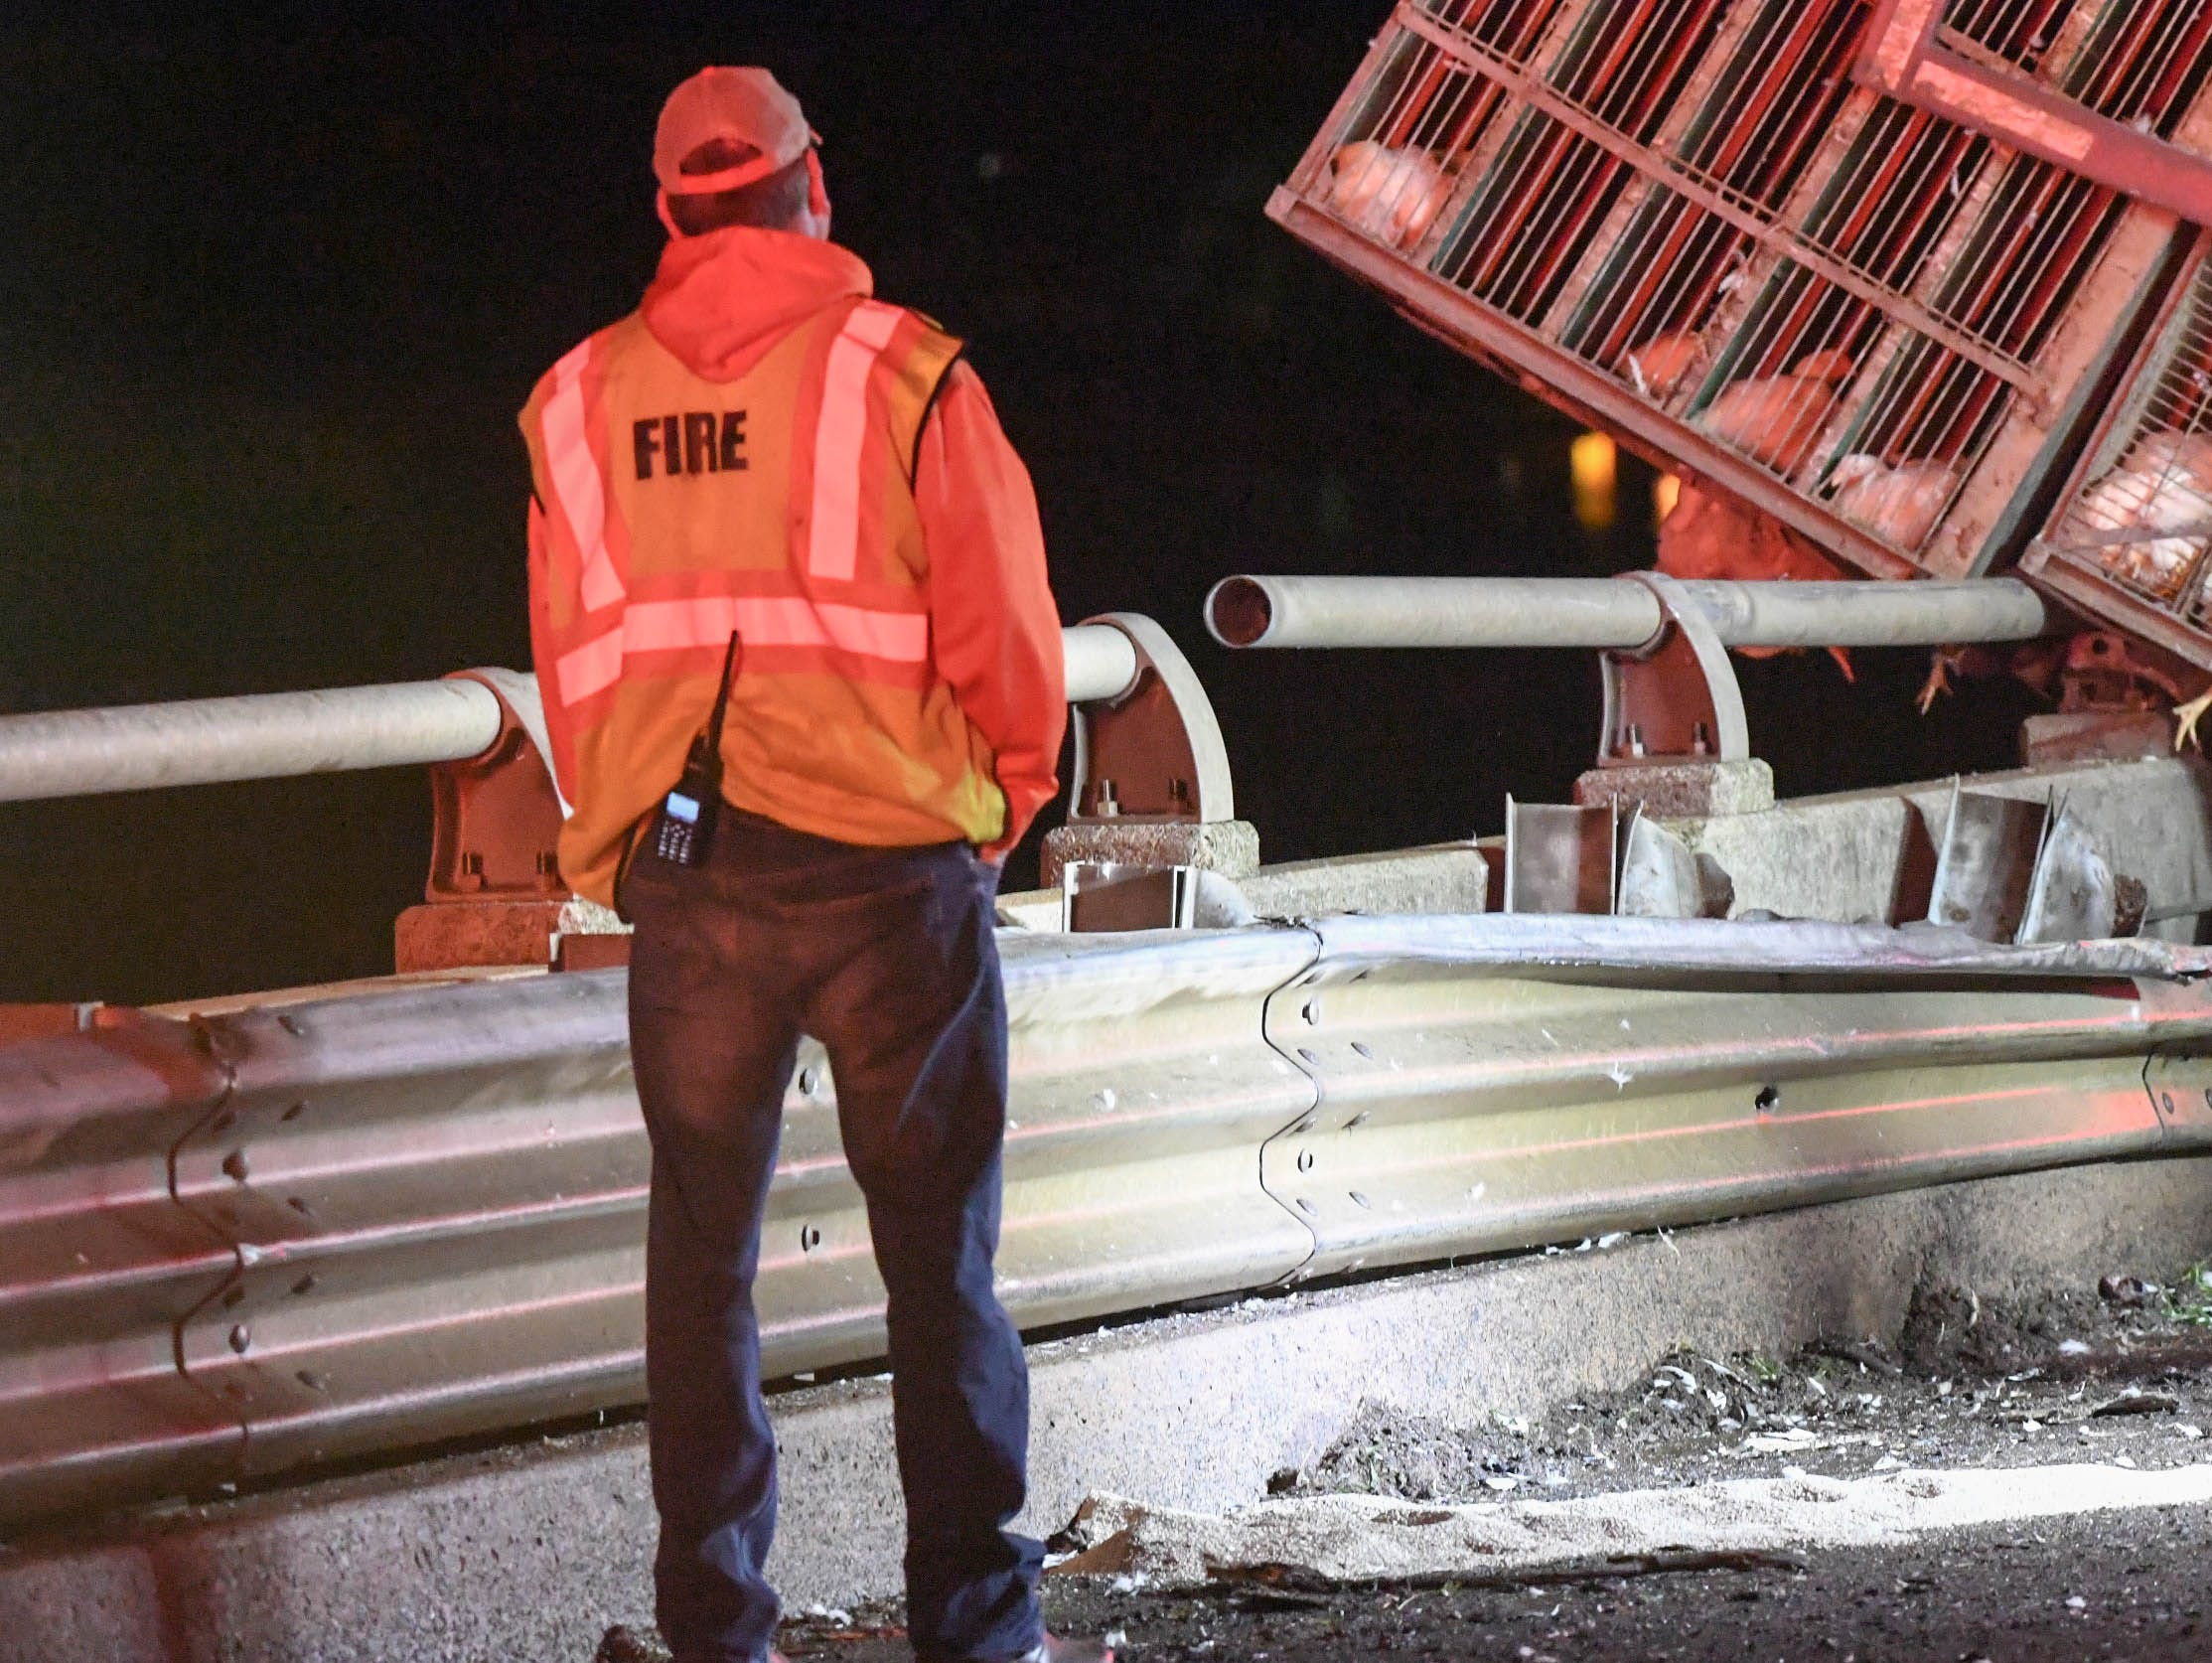 A fireman looks at cages with live chickens leaning on a broken guard rail on a bridge over Lake Hartwell on state highway 24 in Anderson Monday evening. One person died after the Ford Taurus collided with an tractor-trailer.